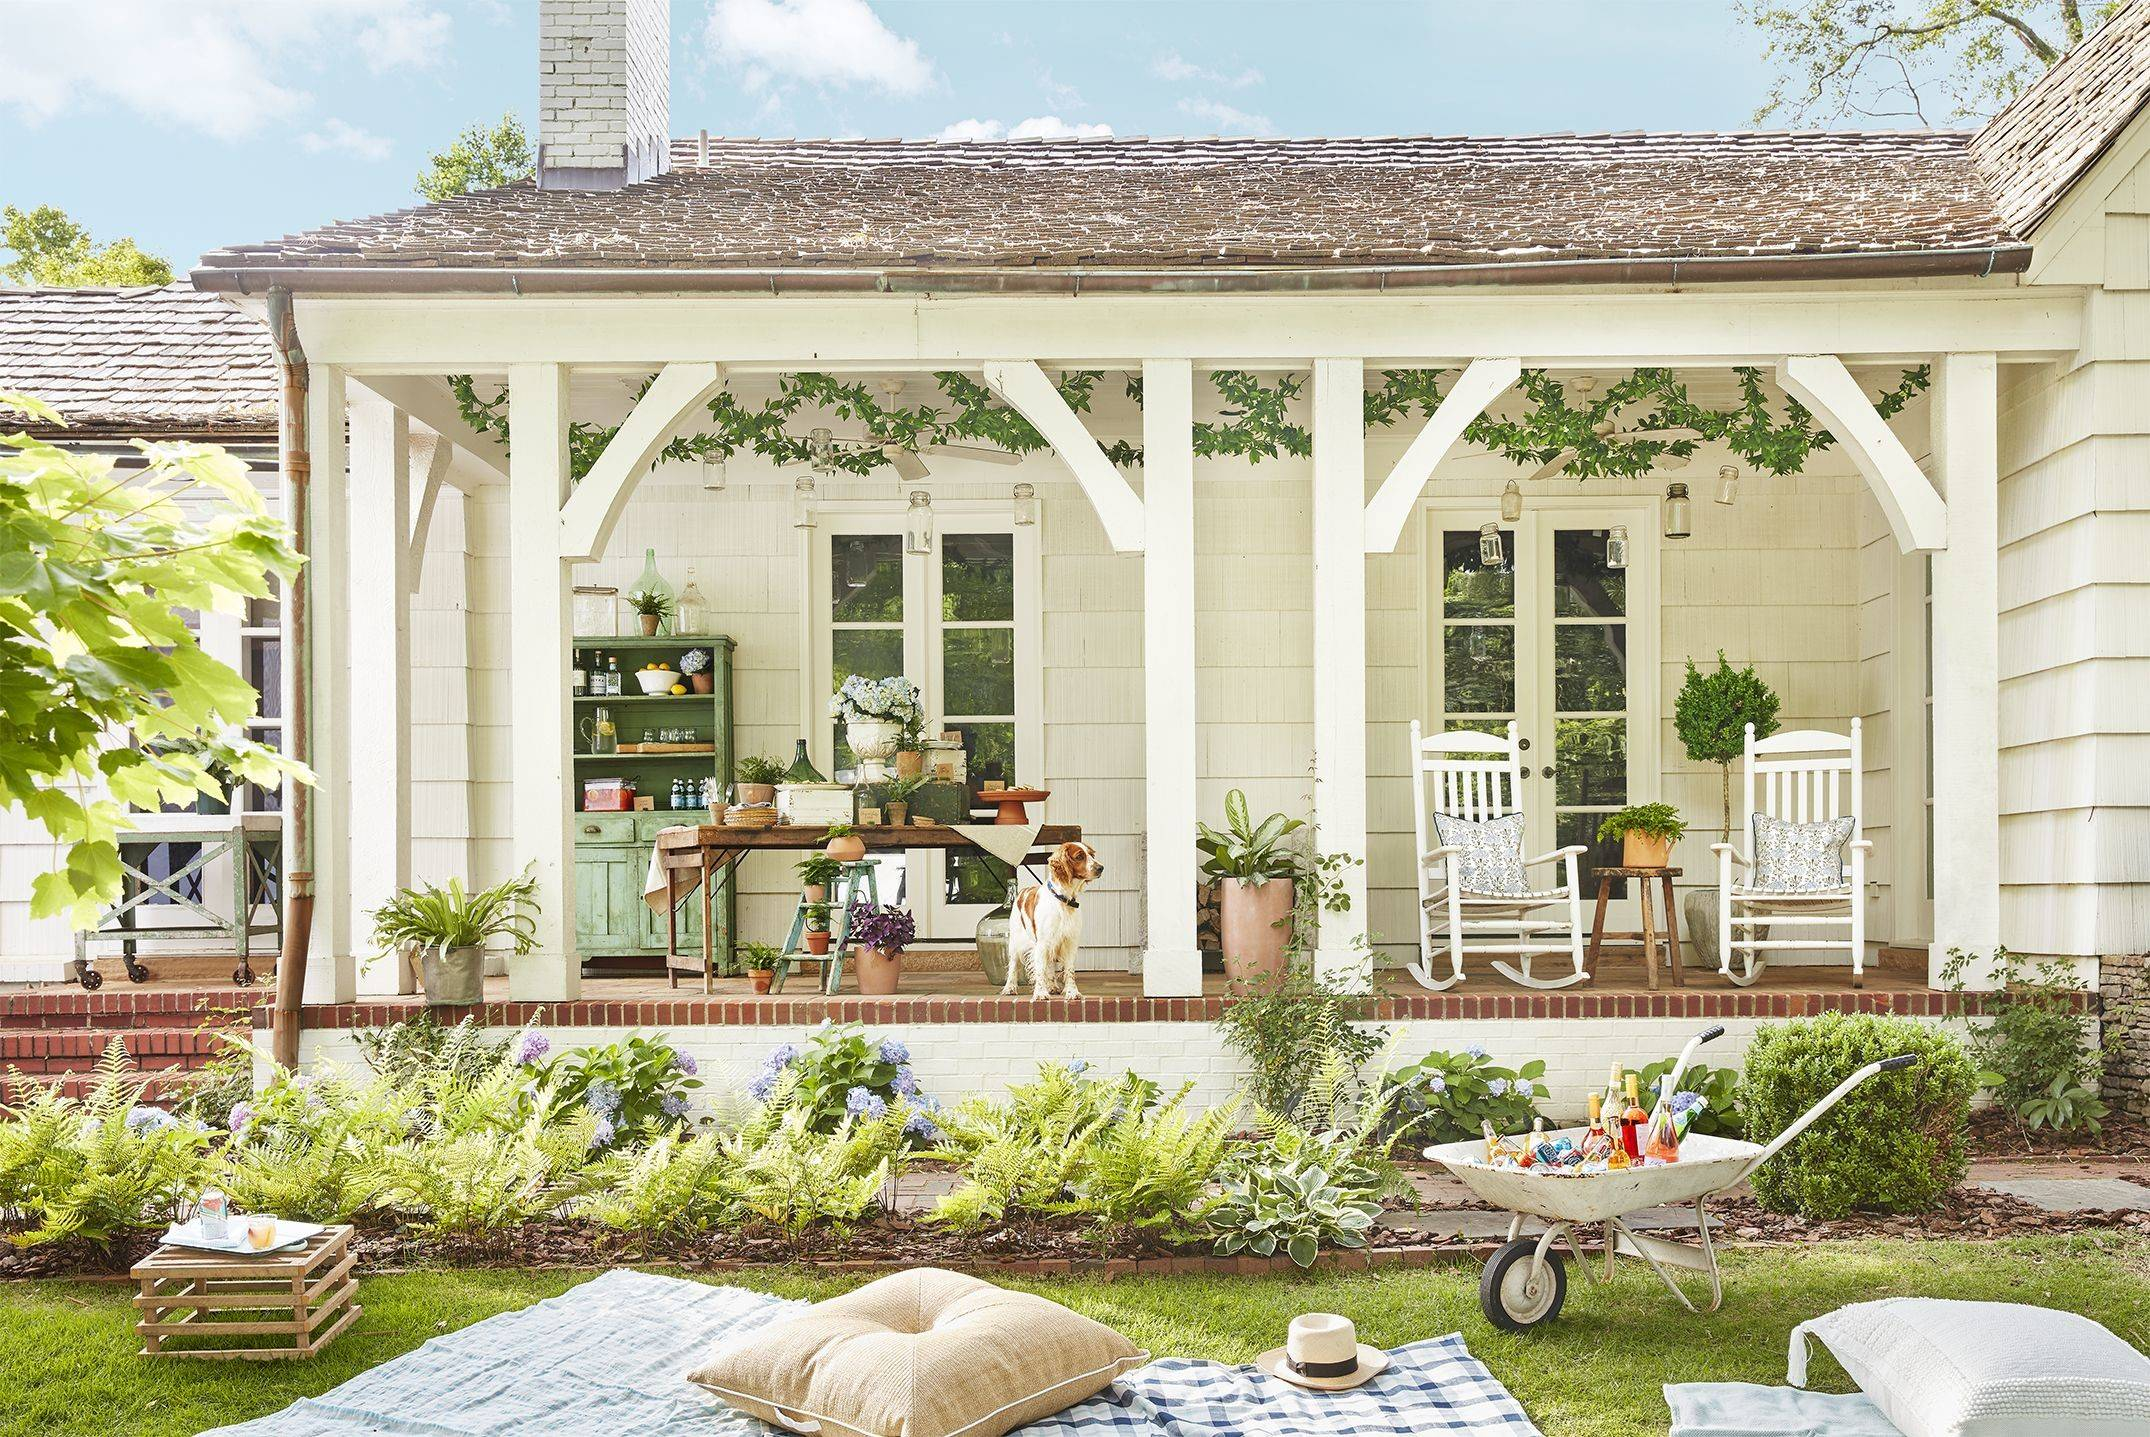 ront porch rocking chairs